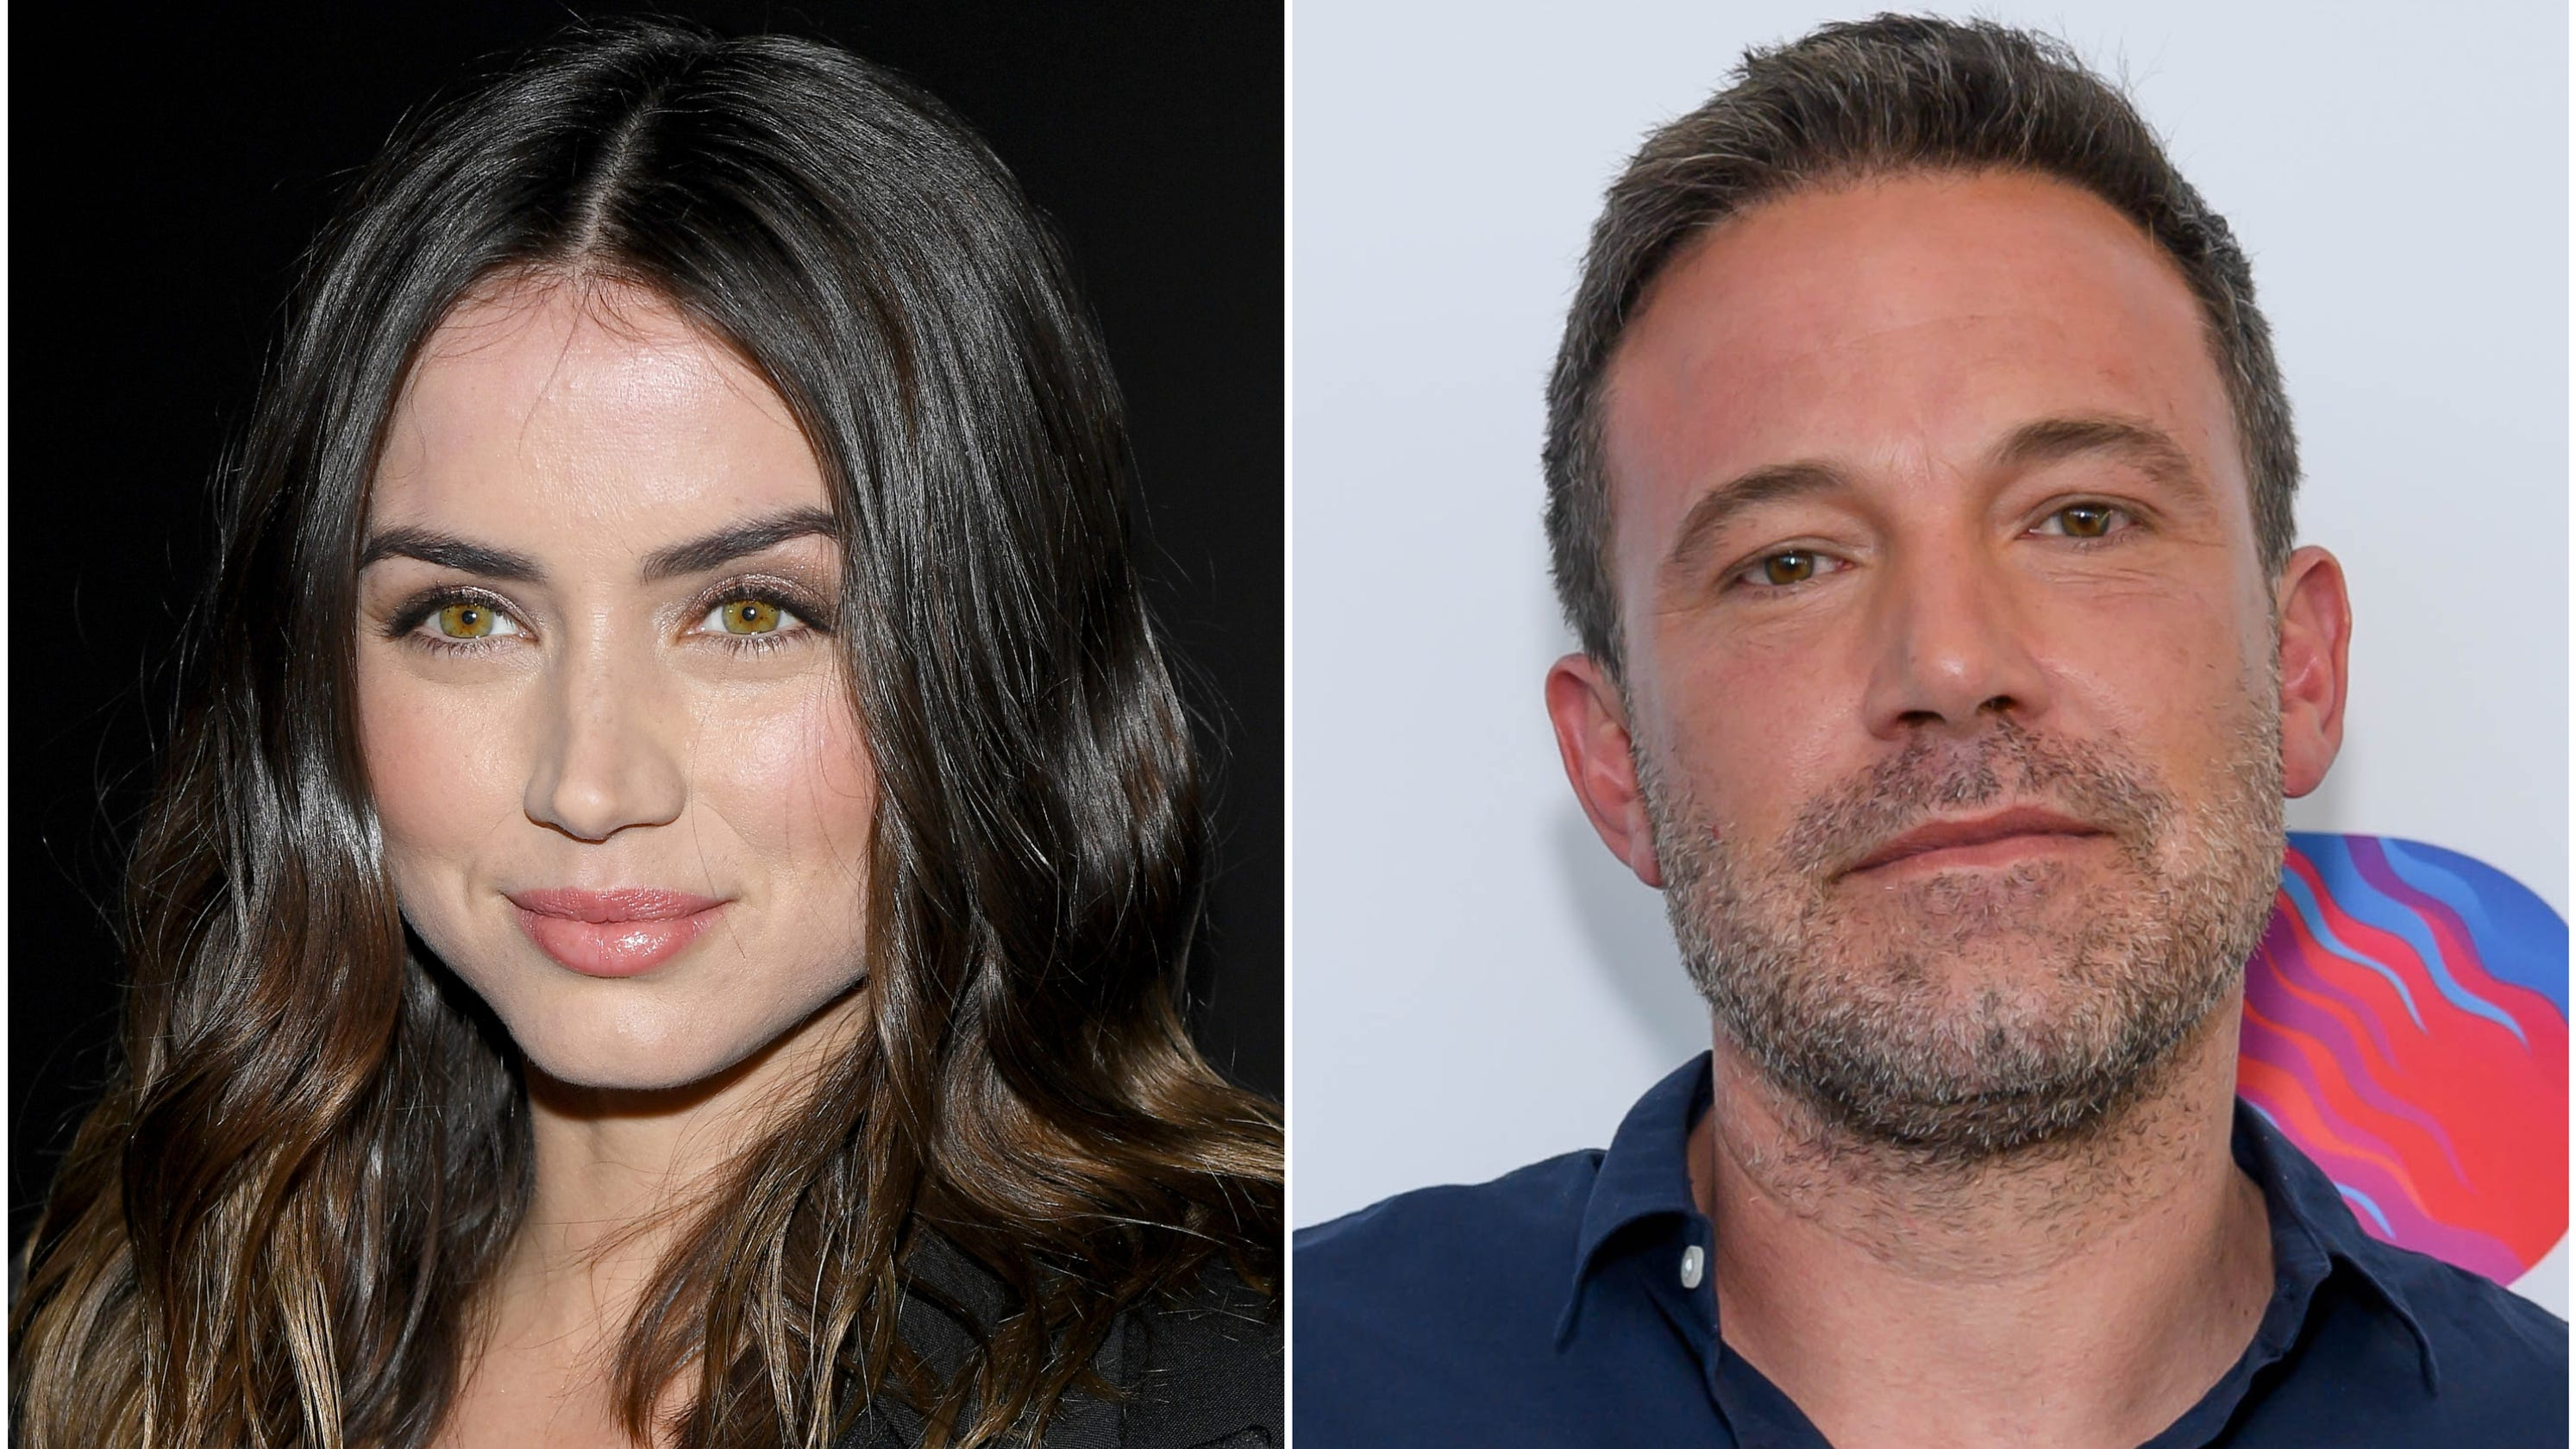 Ana de Armas and Ben Affleck go Instagram official, get cozy in sweet birthday photos